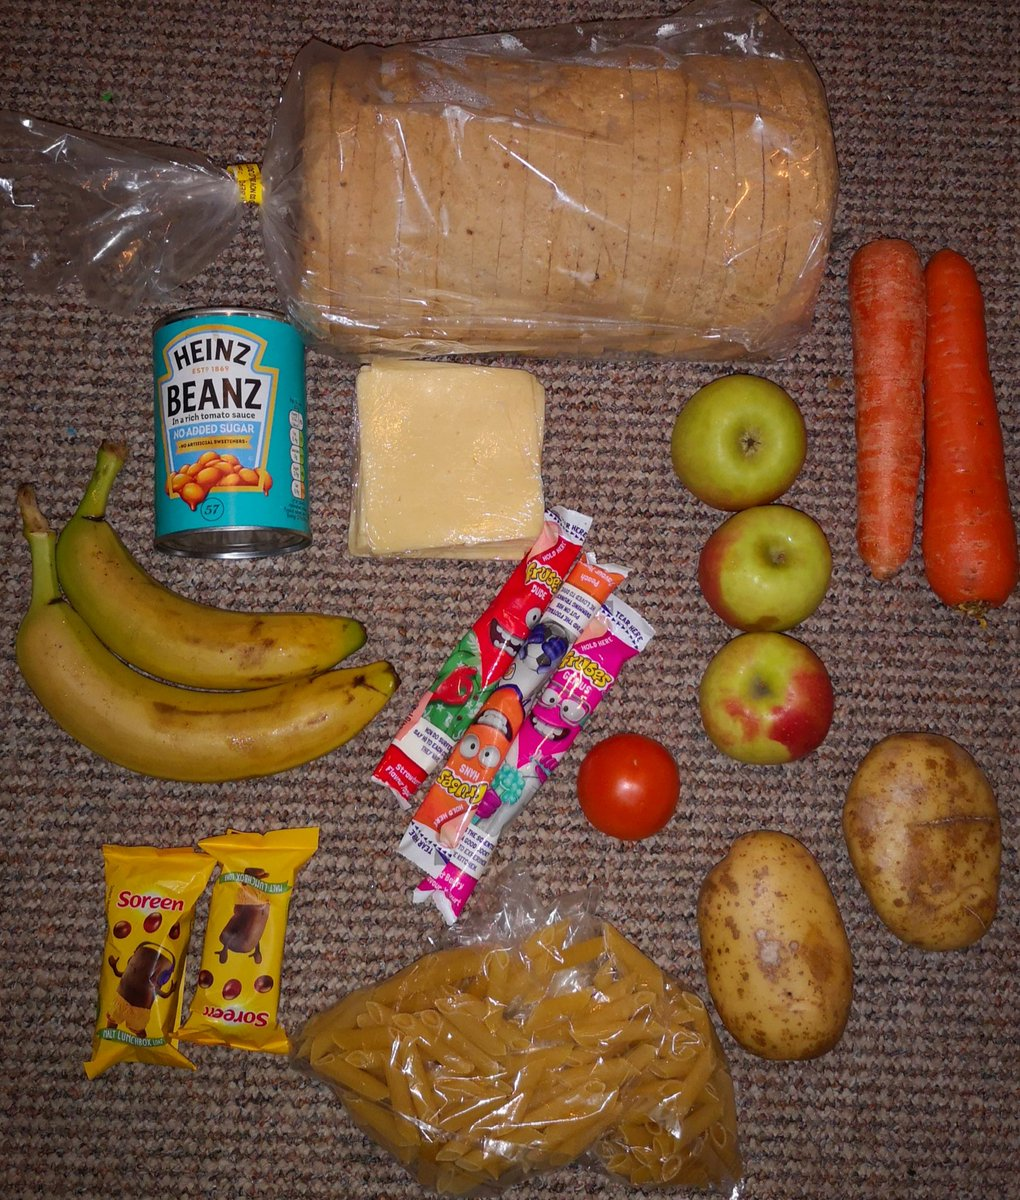 #FreeSchoolMeals bag for 10 days:  2 days jacket potato with beans 8 single cheese sandwiches  2 days carrots 3 days apples 2 days soreen 3 days frubes  Spare pasta & tomato. Will need mayo for pasta salad.  Issued instead of £30 vouchers. I could do more with £30 to be honest. https://t.co/87LGUTHXEu